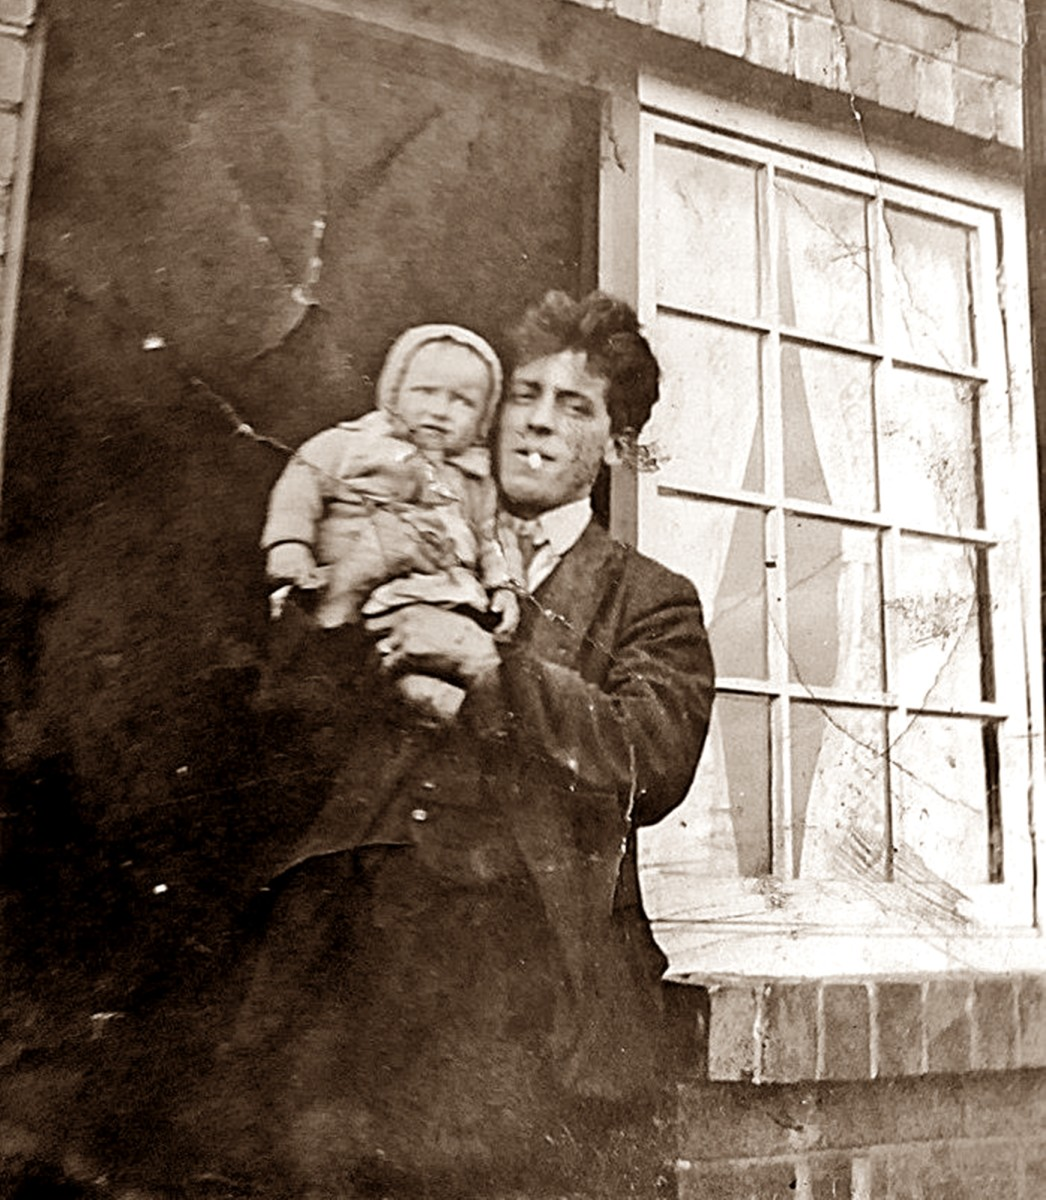 My grandad, Frank Trigg, with mum as a baby.